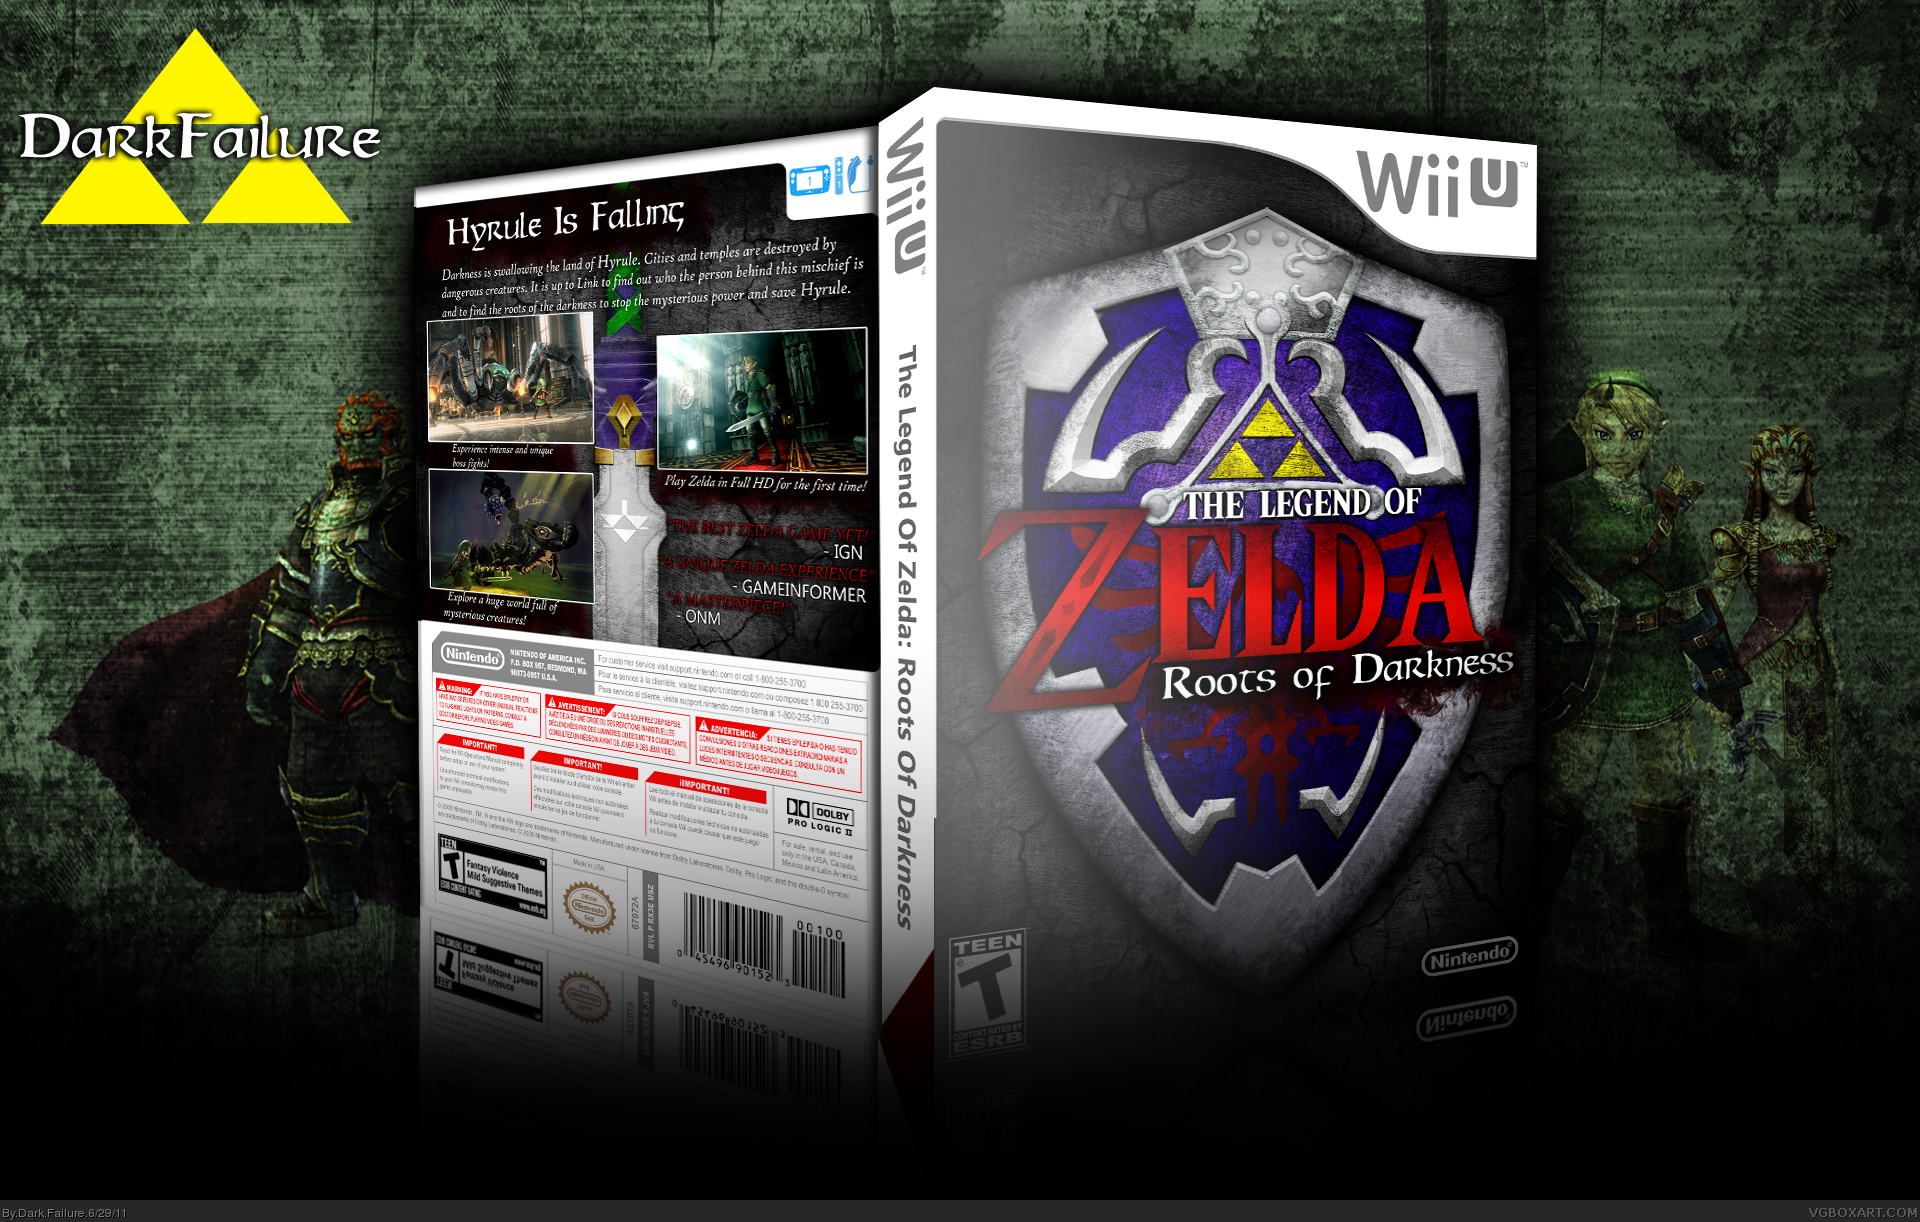 The Legend Of Zelda: Roots Of Darkness box cover